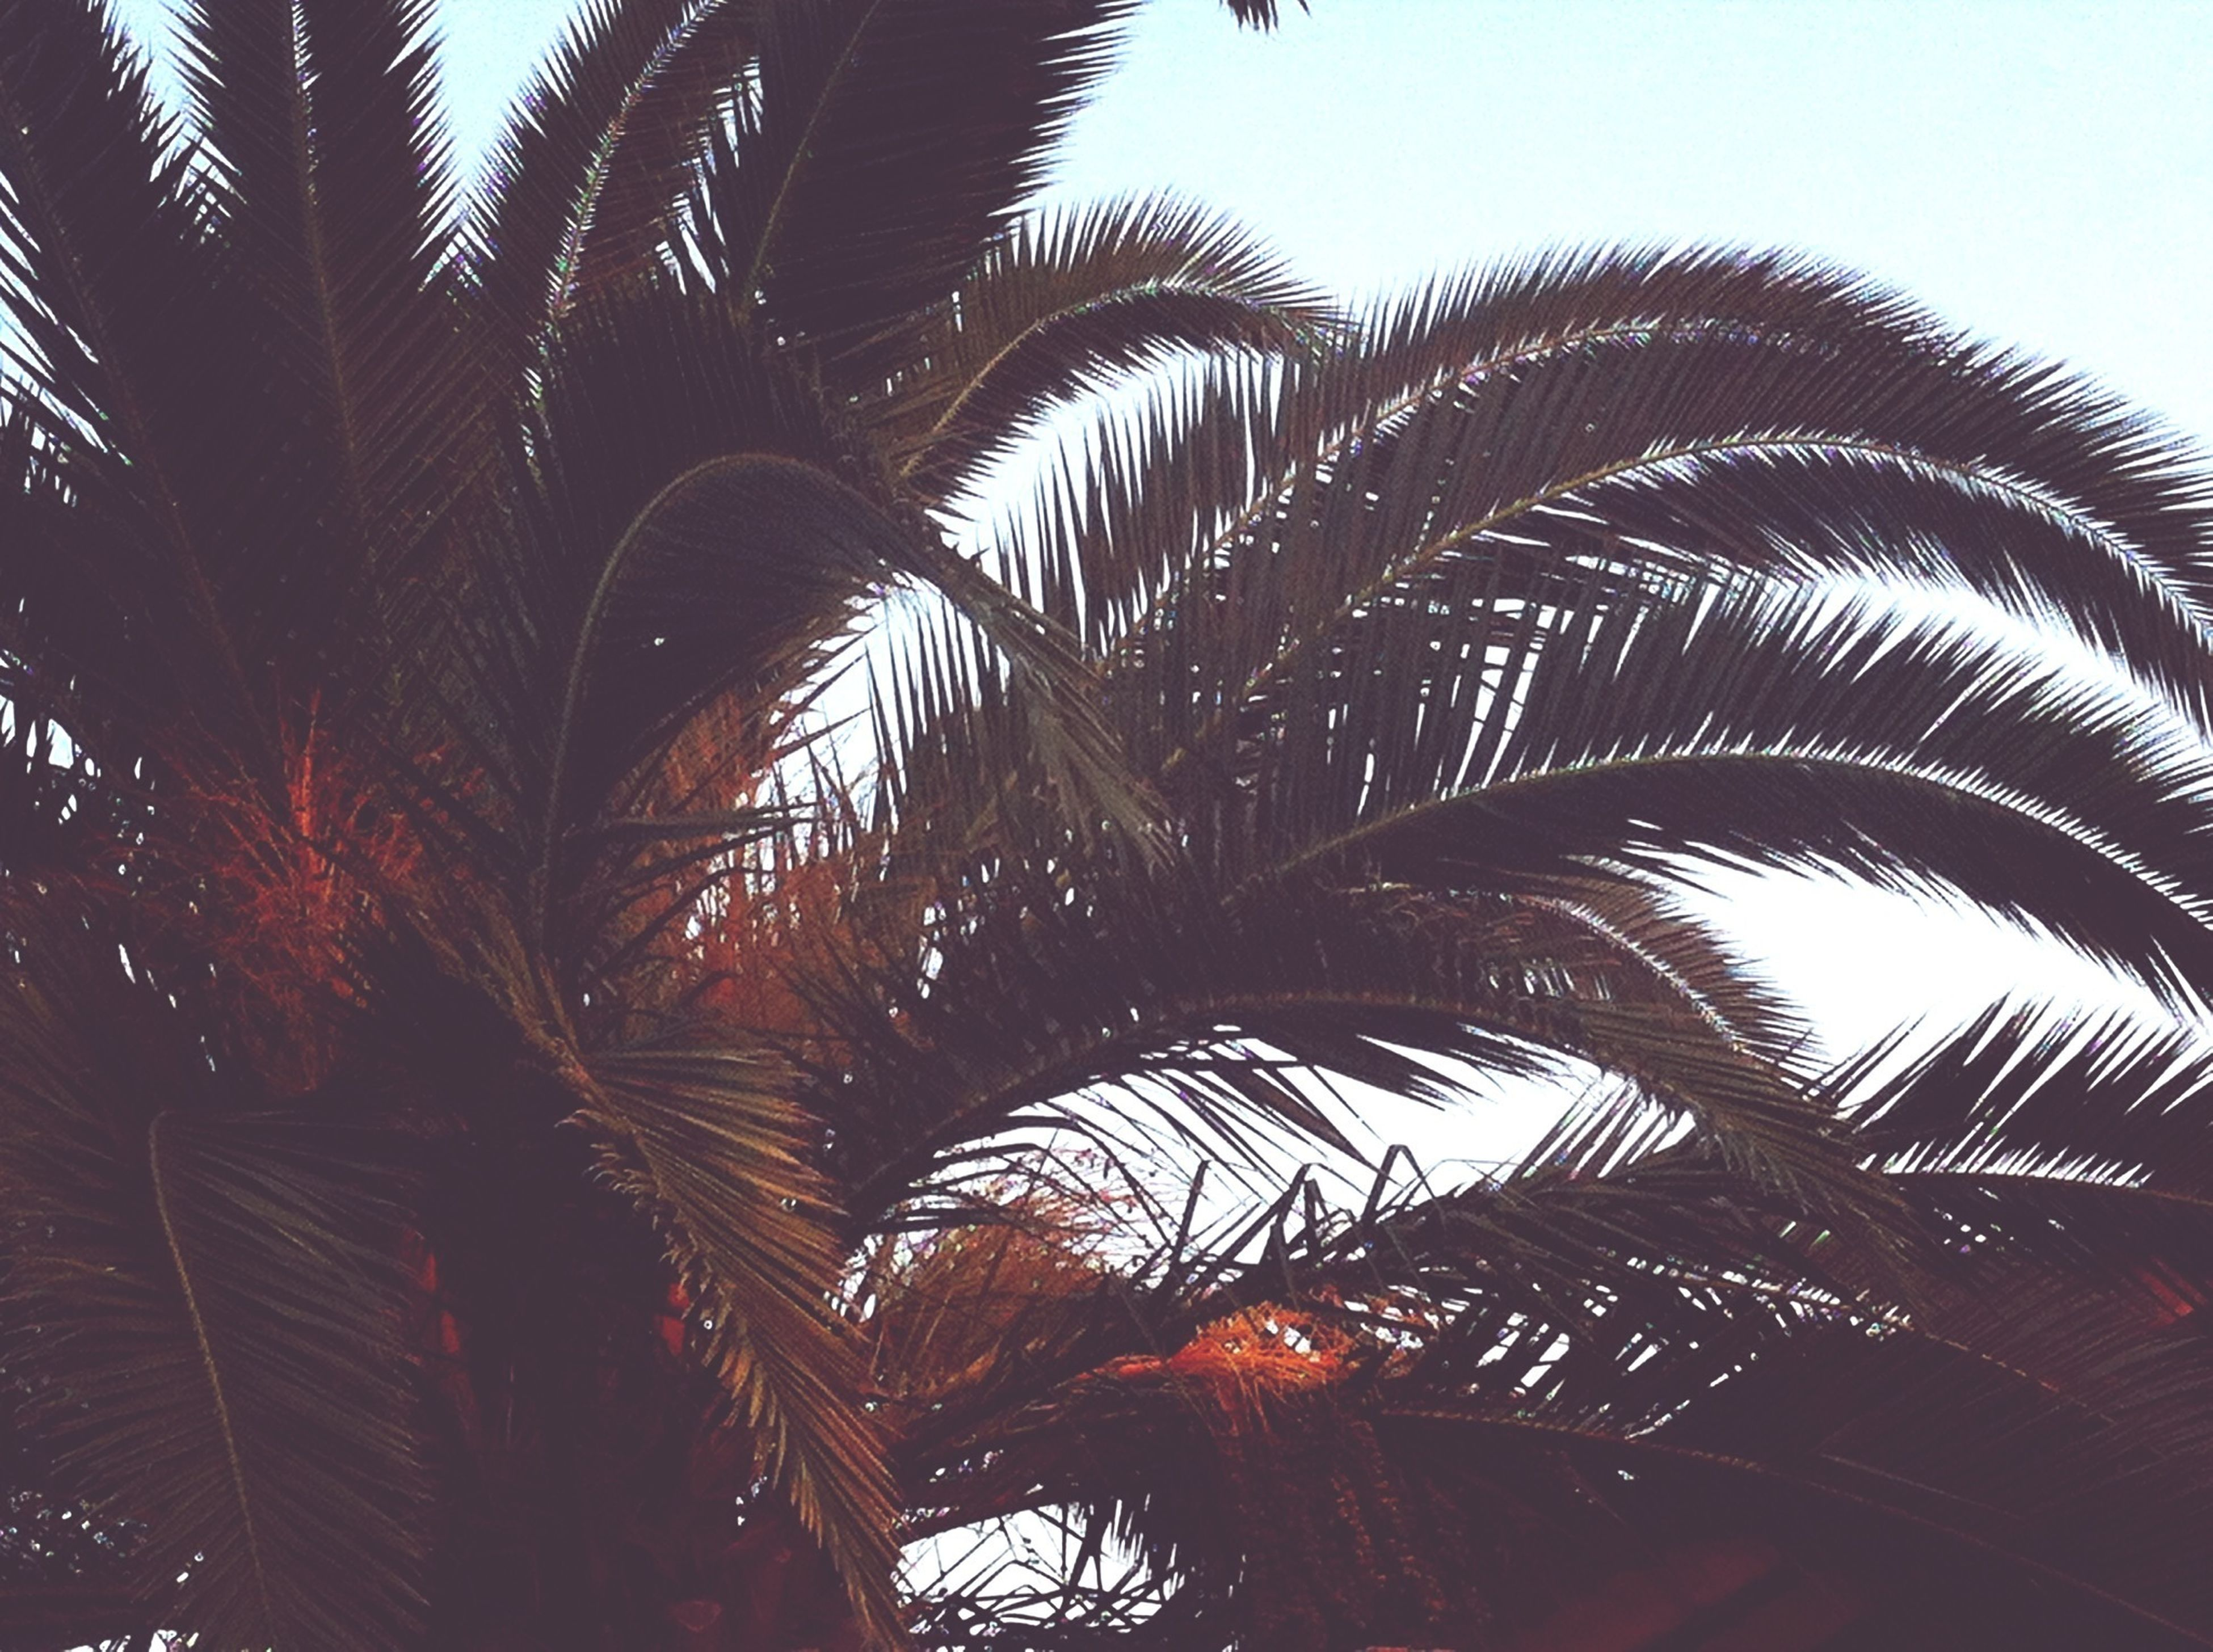 palm tree, tree, low angle view, growth, clear sky, palm leaf, sky, nature, tranquility, beauty in nature, tree trunk, coconut palm tree, tall - high, branch, silhouette, outdoors, tropical tree, tropical climate, scenics, palm frond